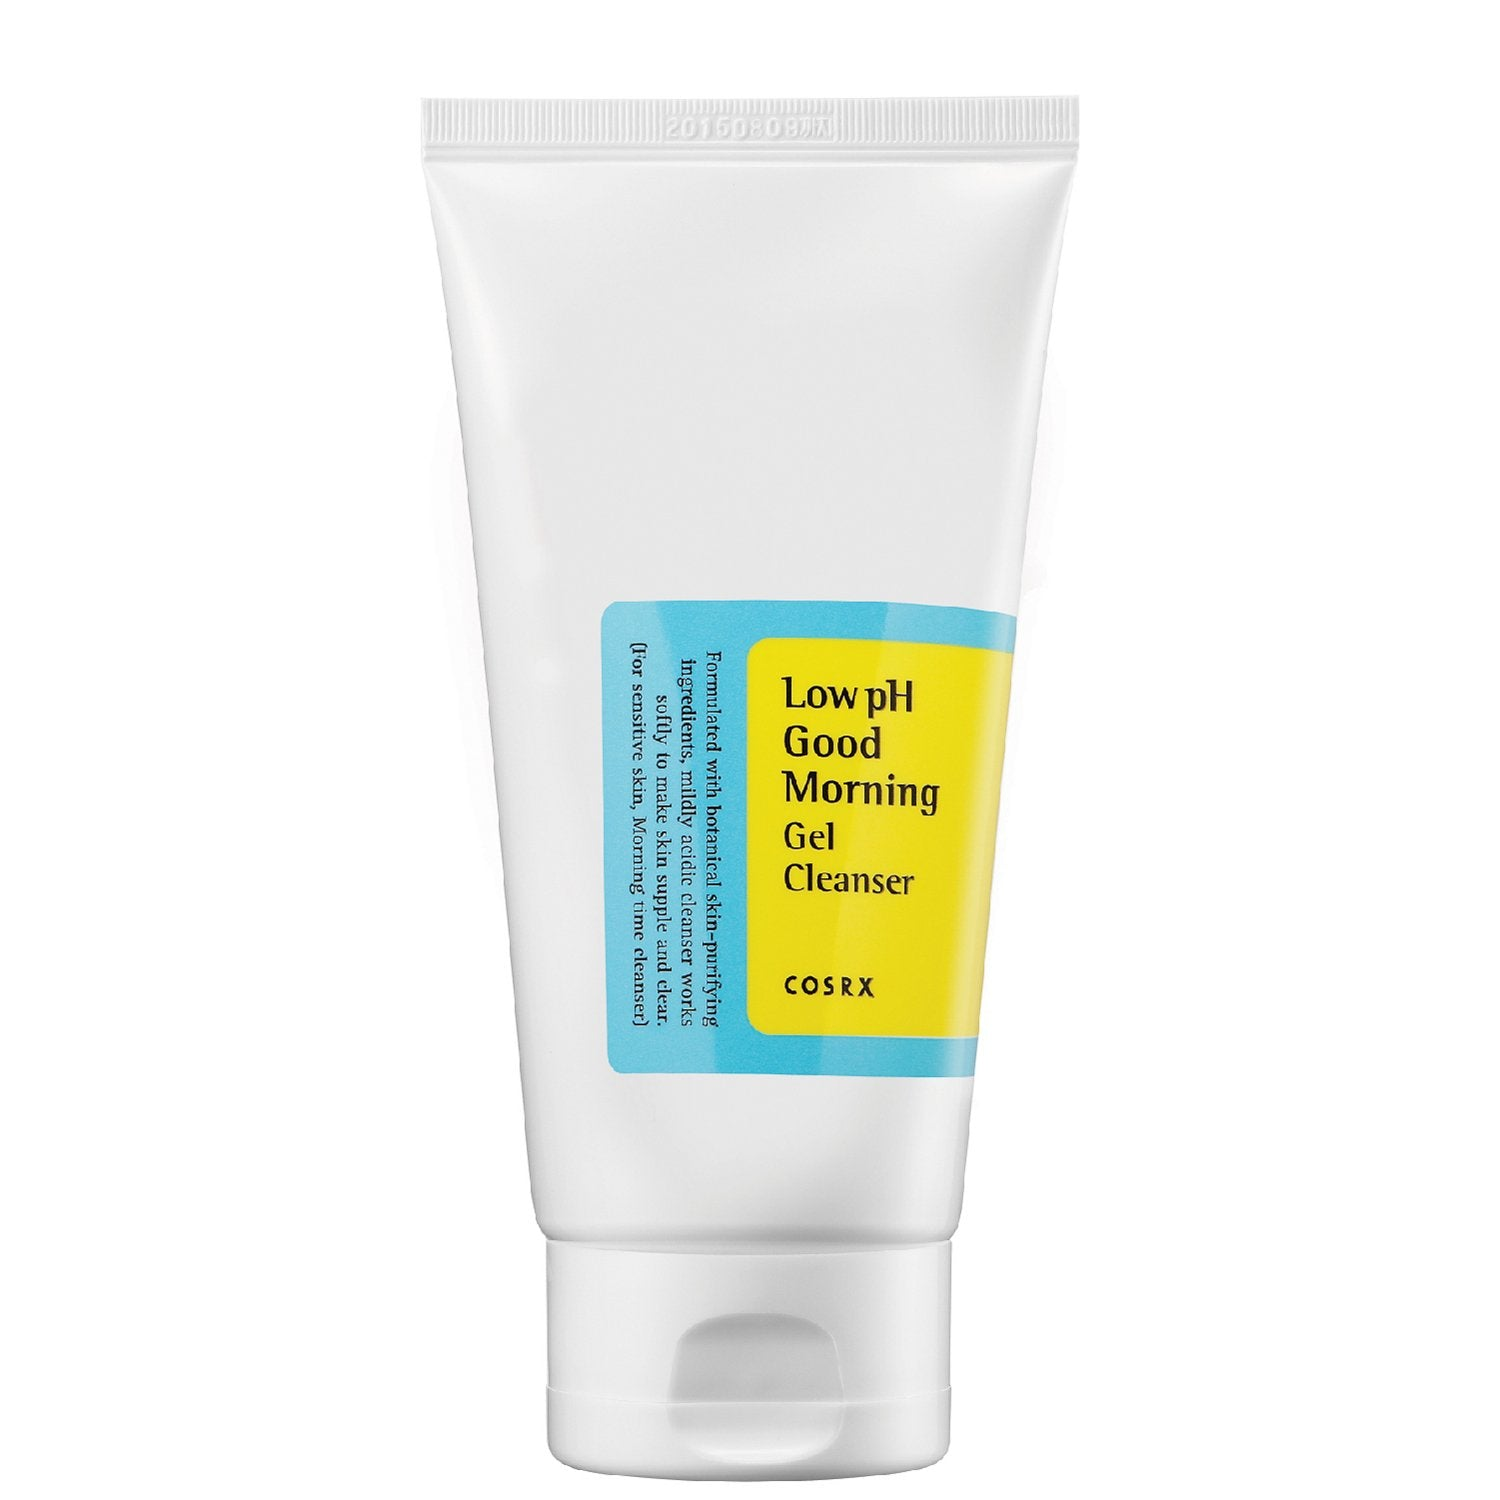 COSRX Low pH Good Morning Gel Cleanser (150ml) - Skinspace